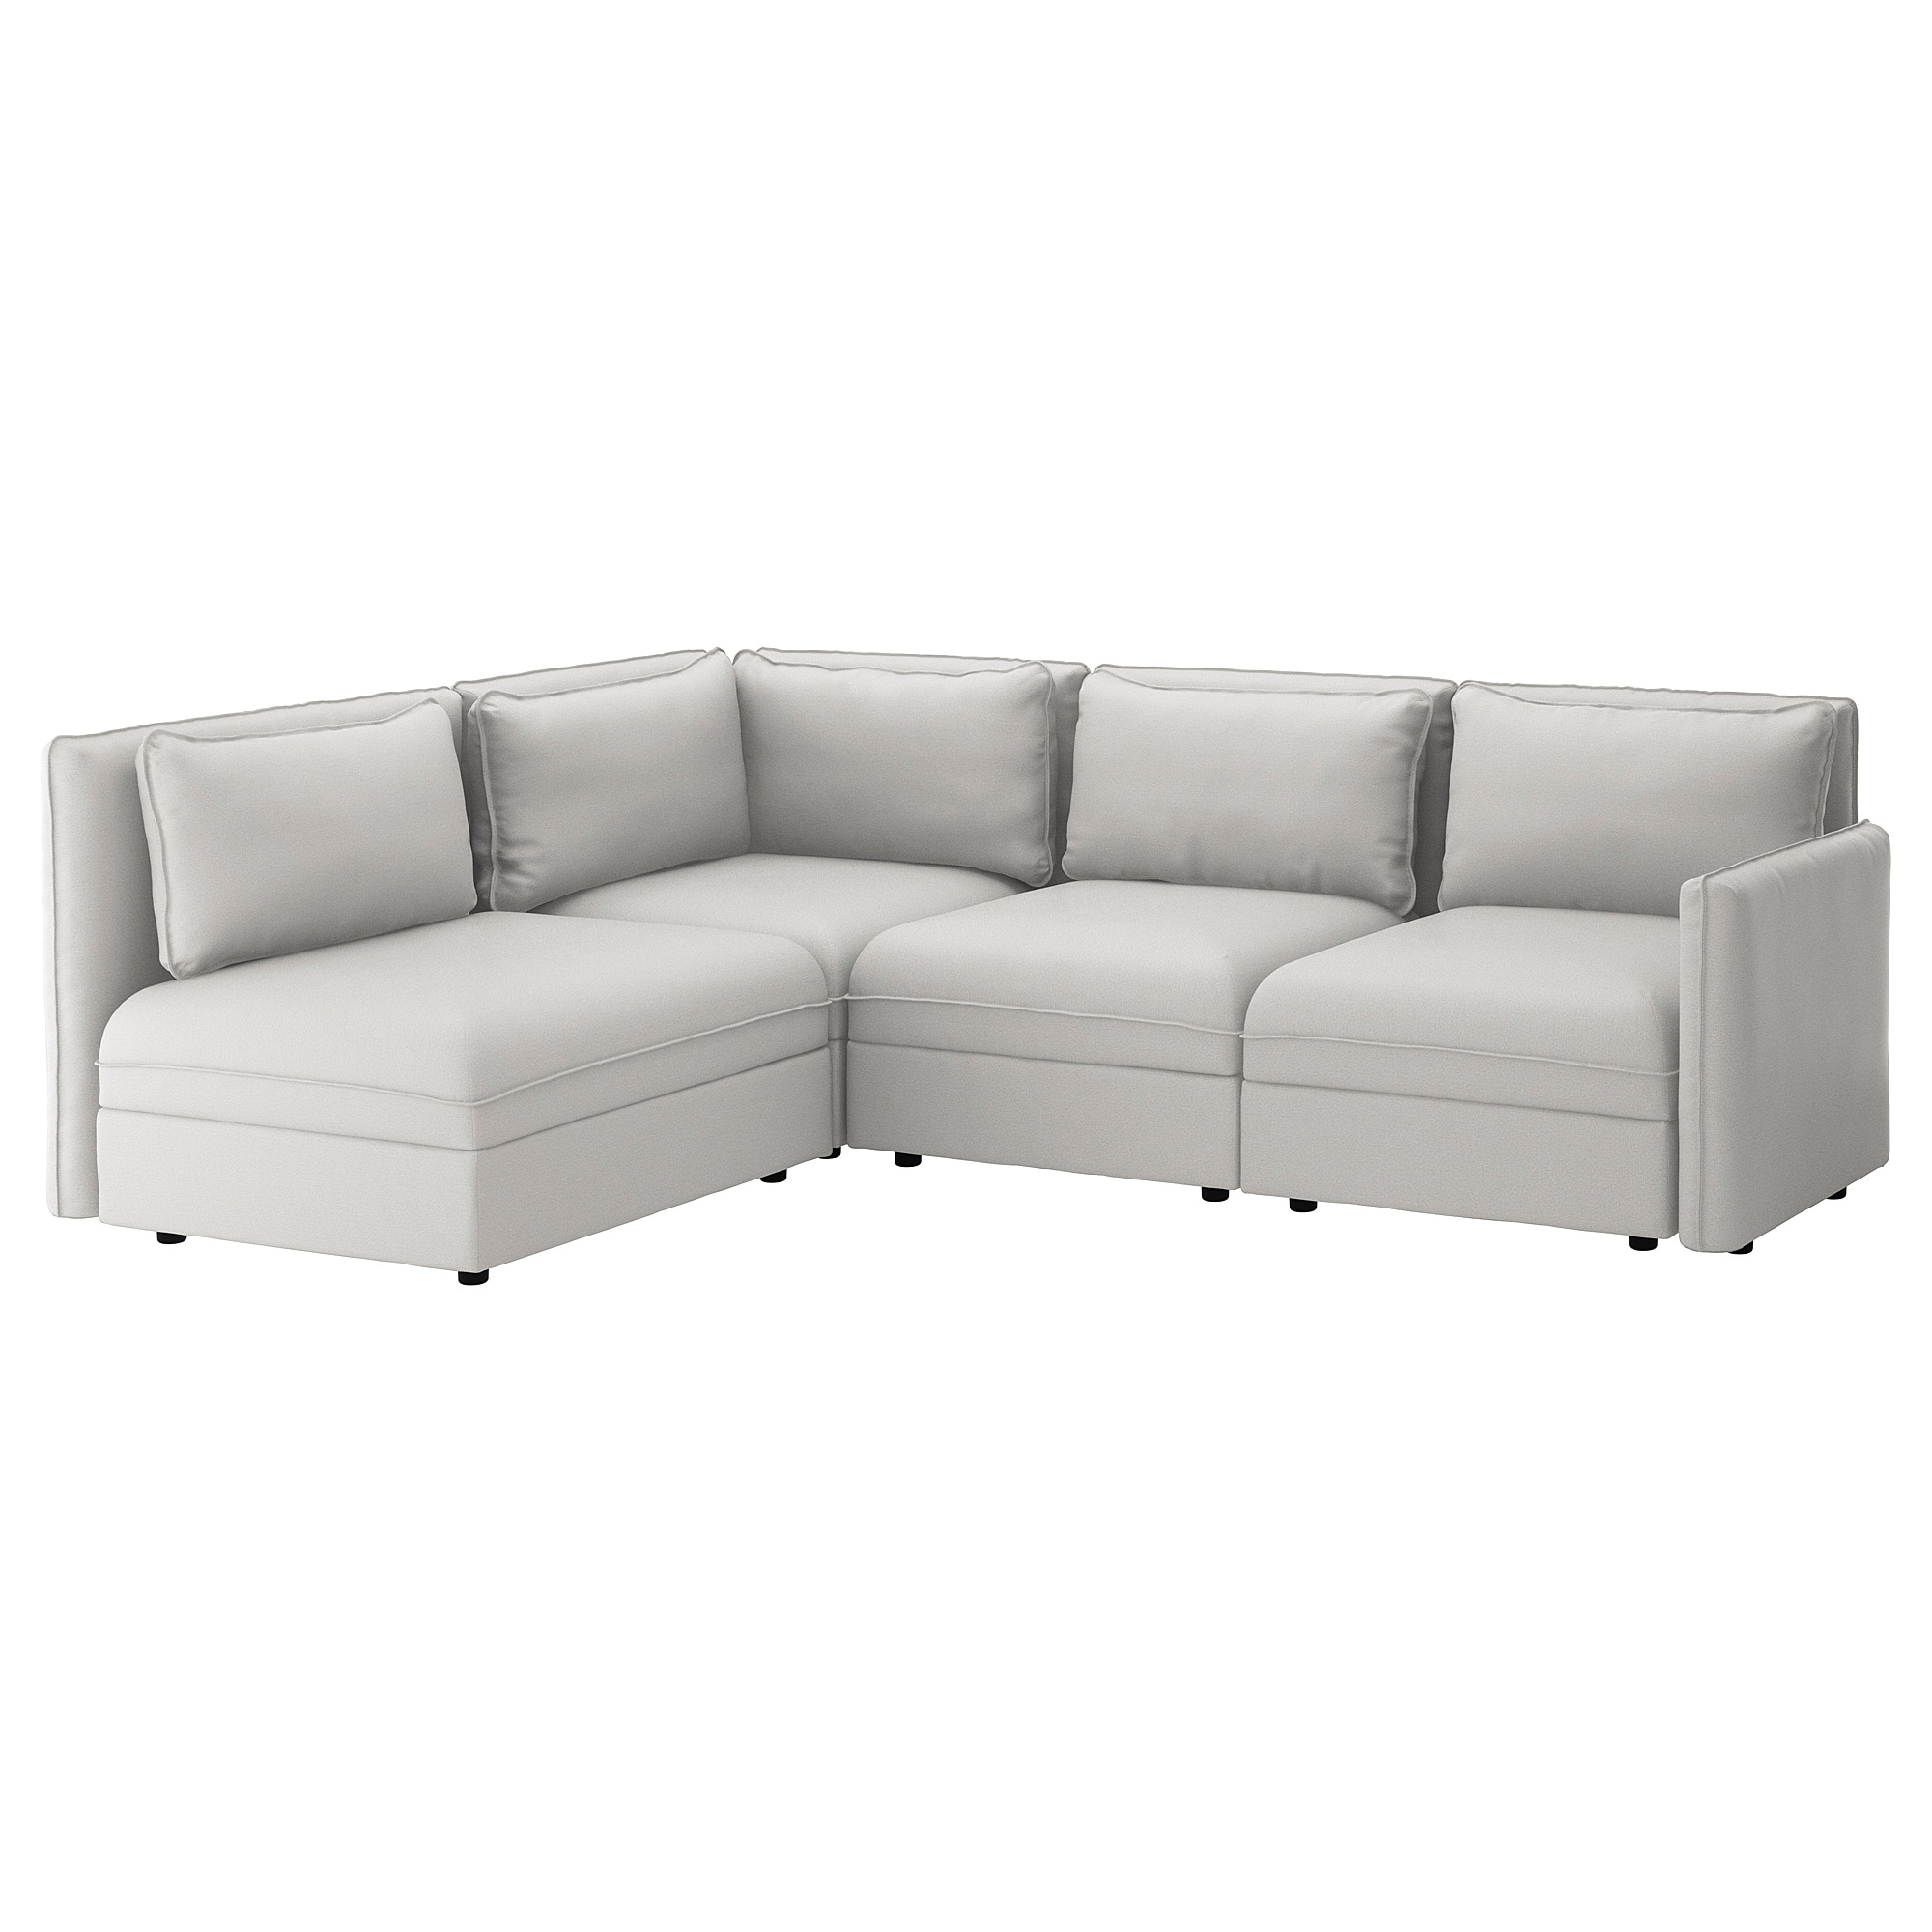 Vallentuna 2 Seat Sofa Bed Vallentuna Collection - Ikea